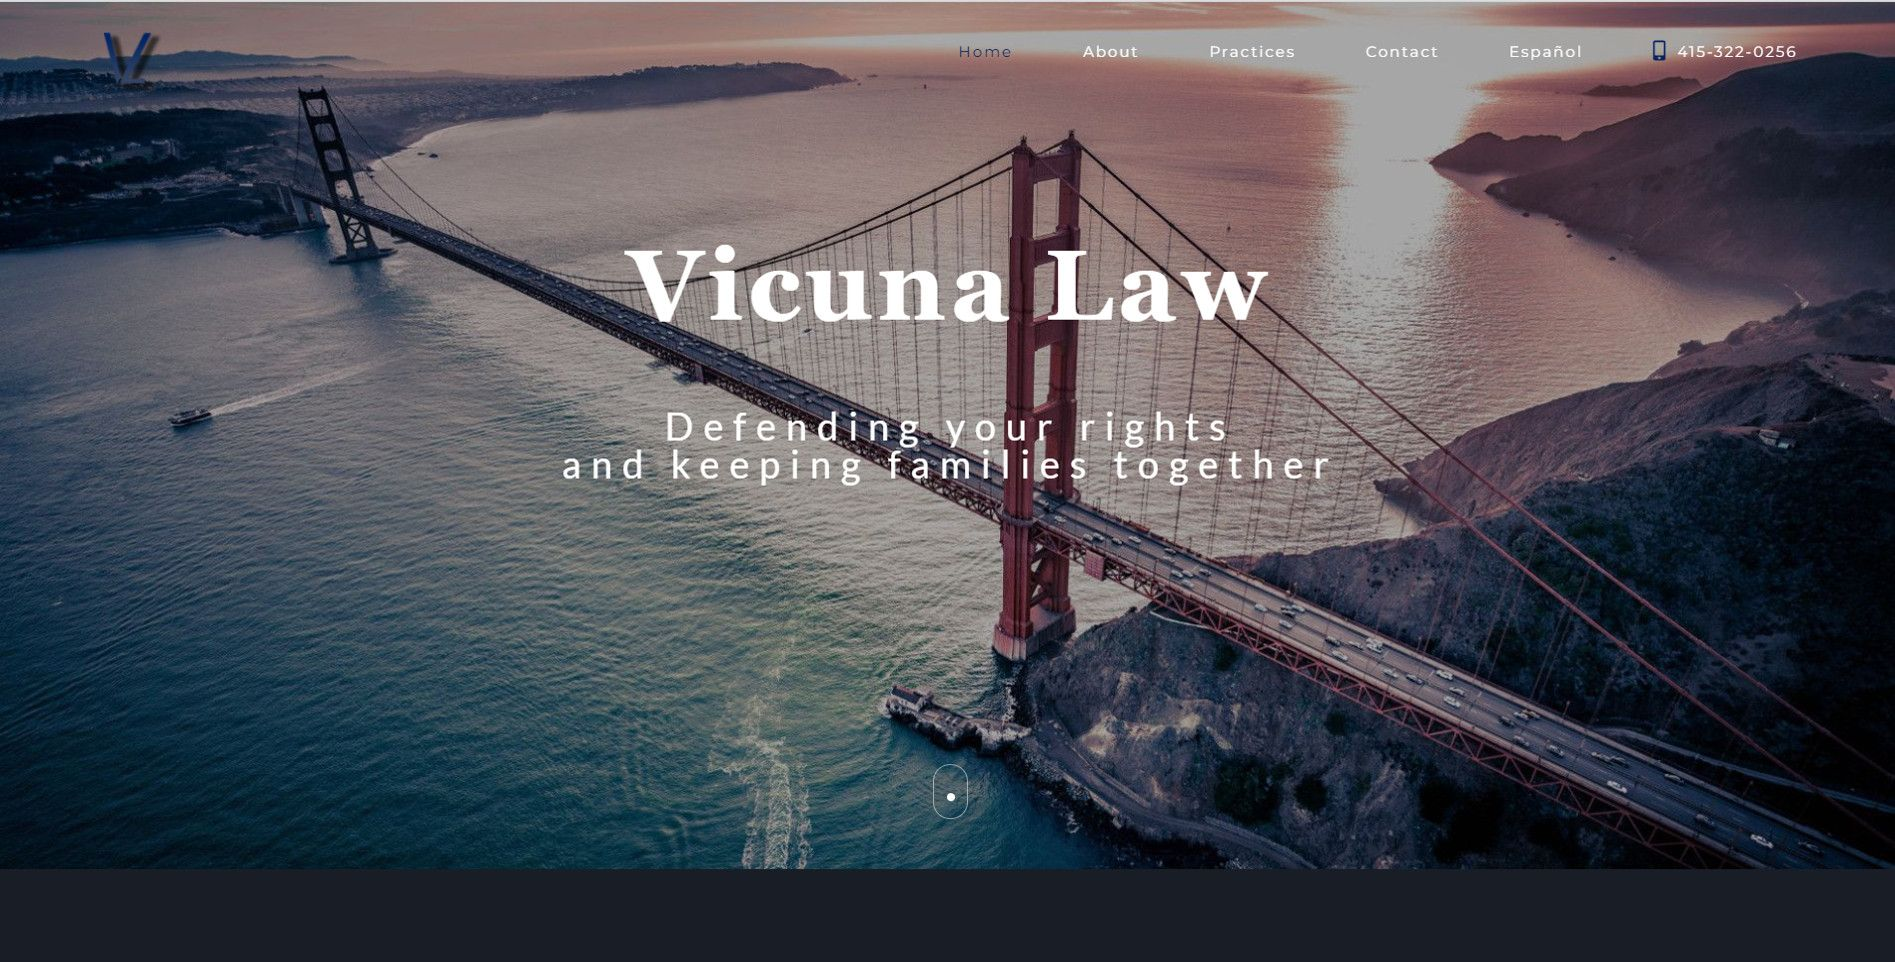 vicuna law home page